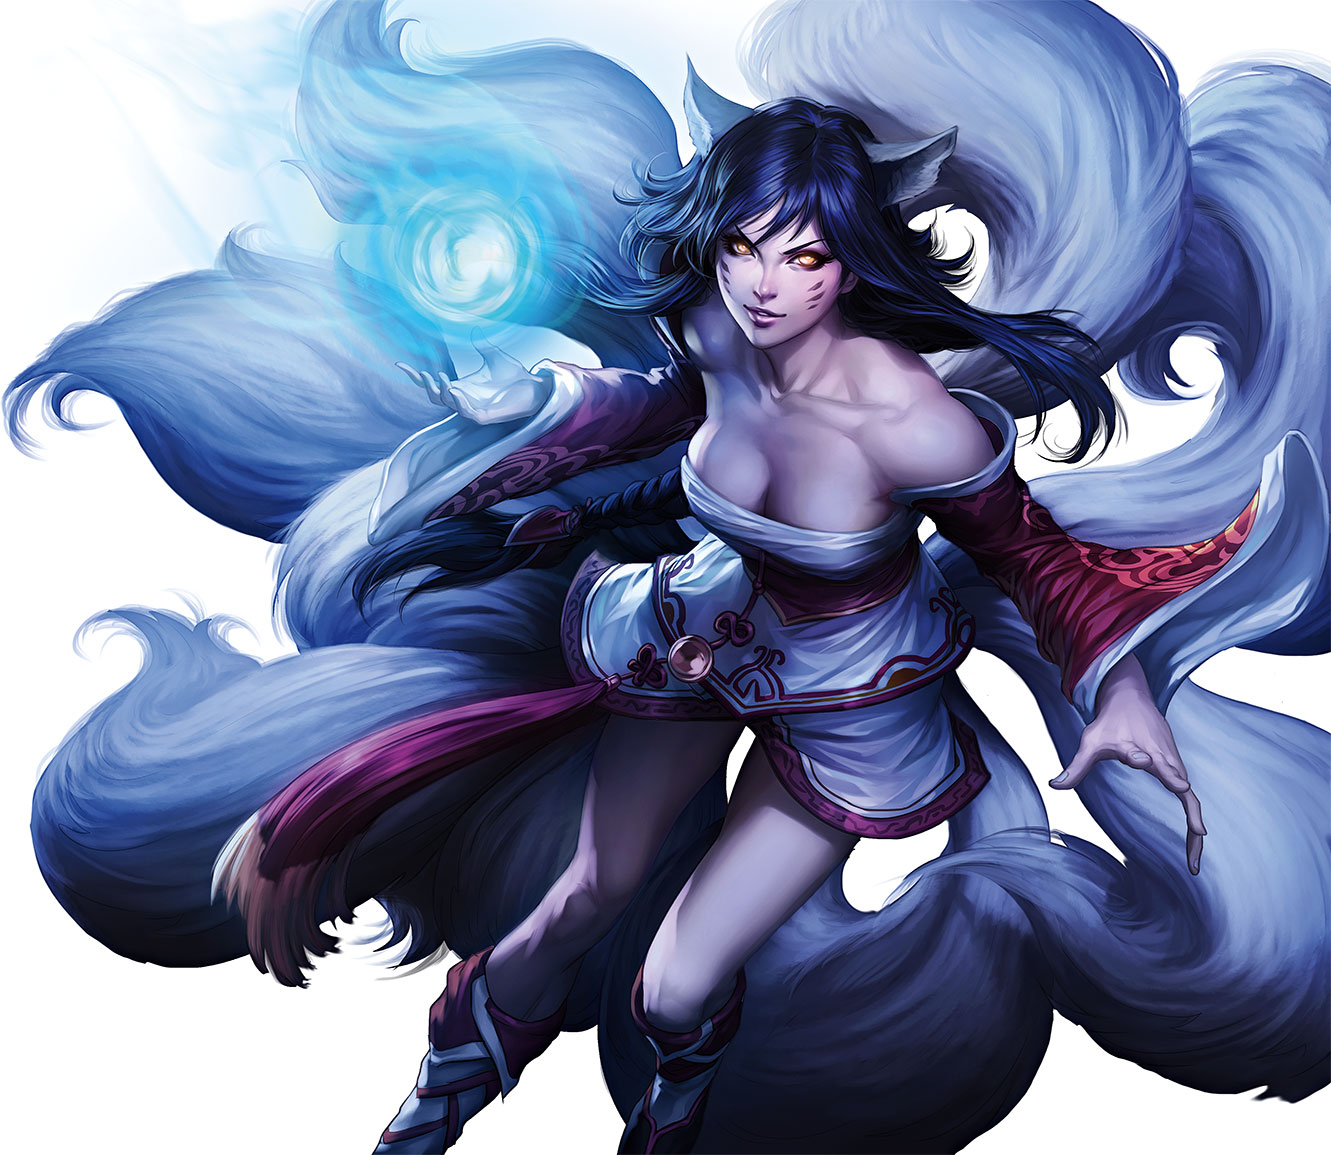 ahritime - Ahri from The Art of League of Legends book